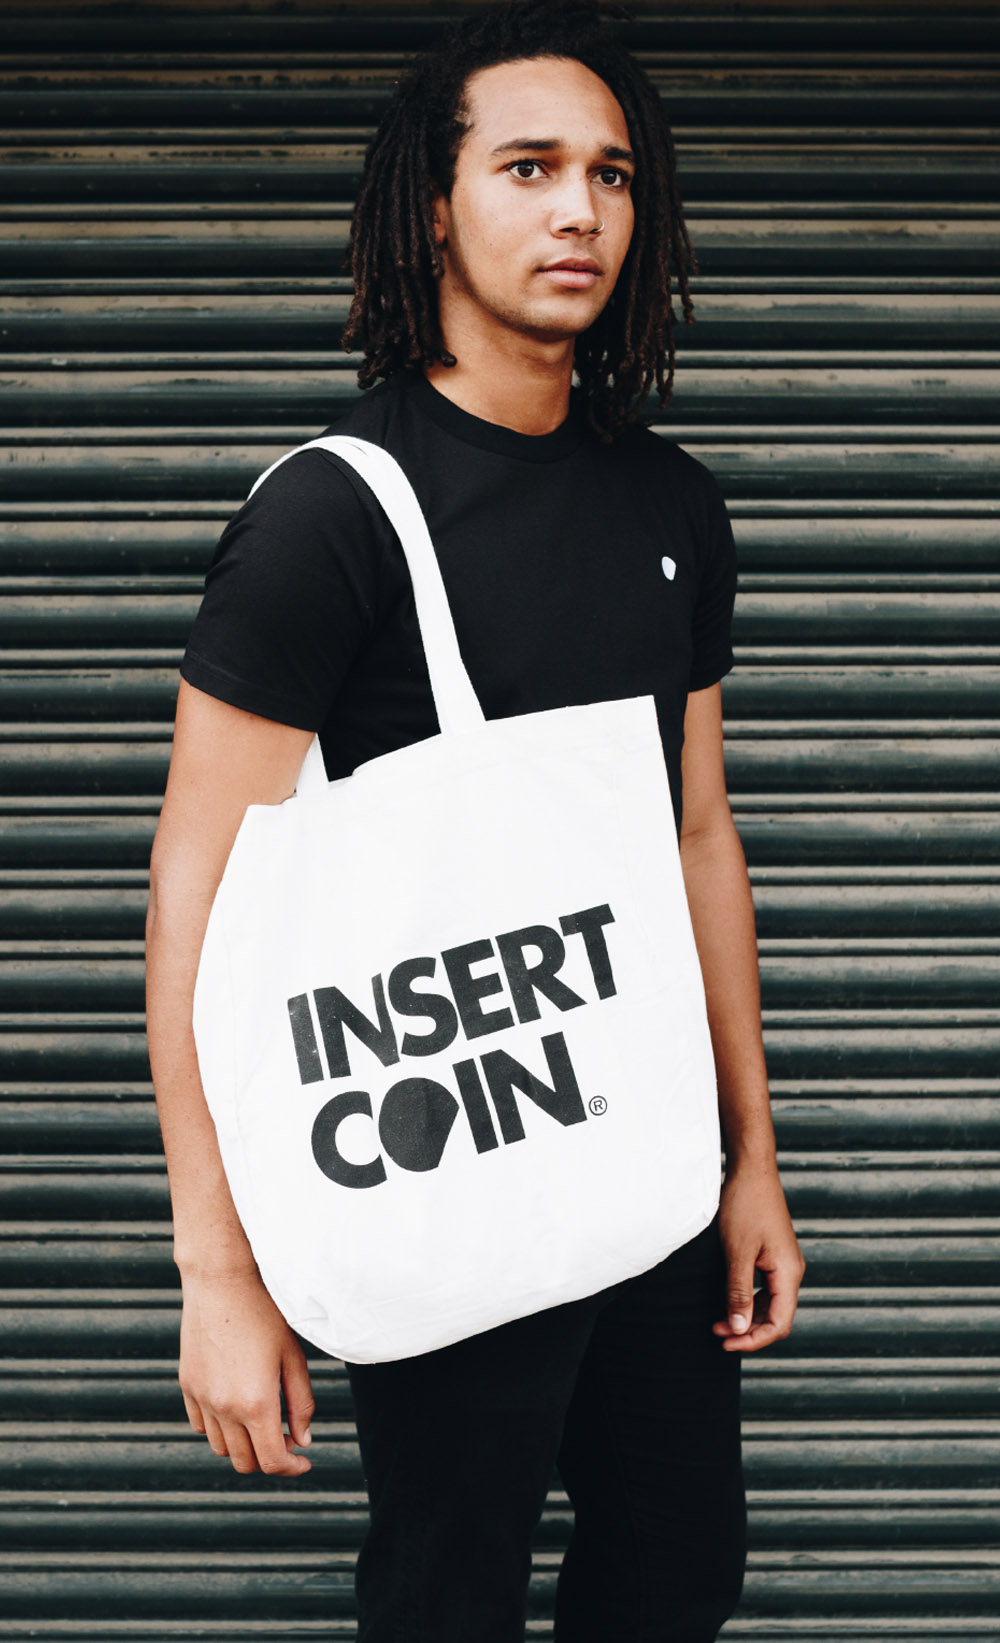 llll Insert Coin Clothing discount codes for November Verified and tested voucher codes Get the cheapest price and save money - mcaccounts.ml